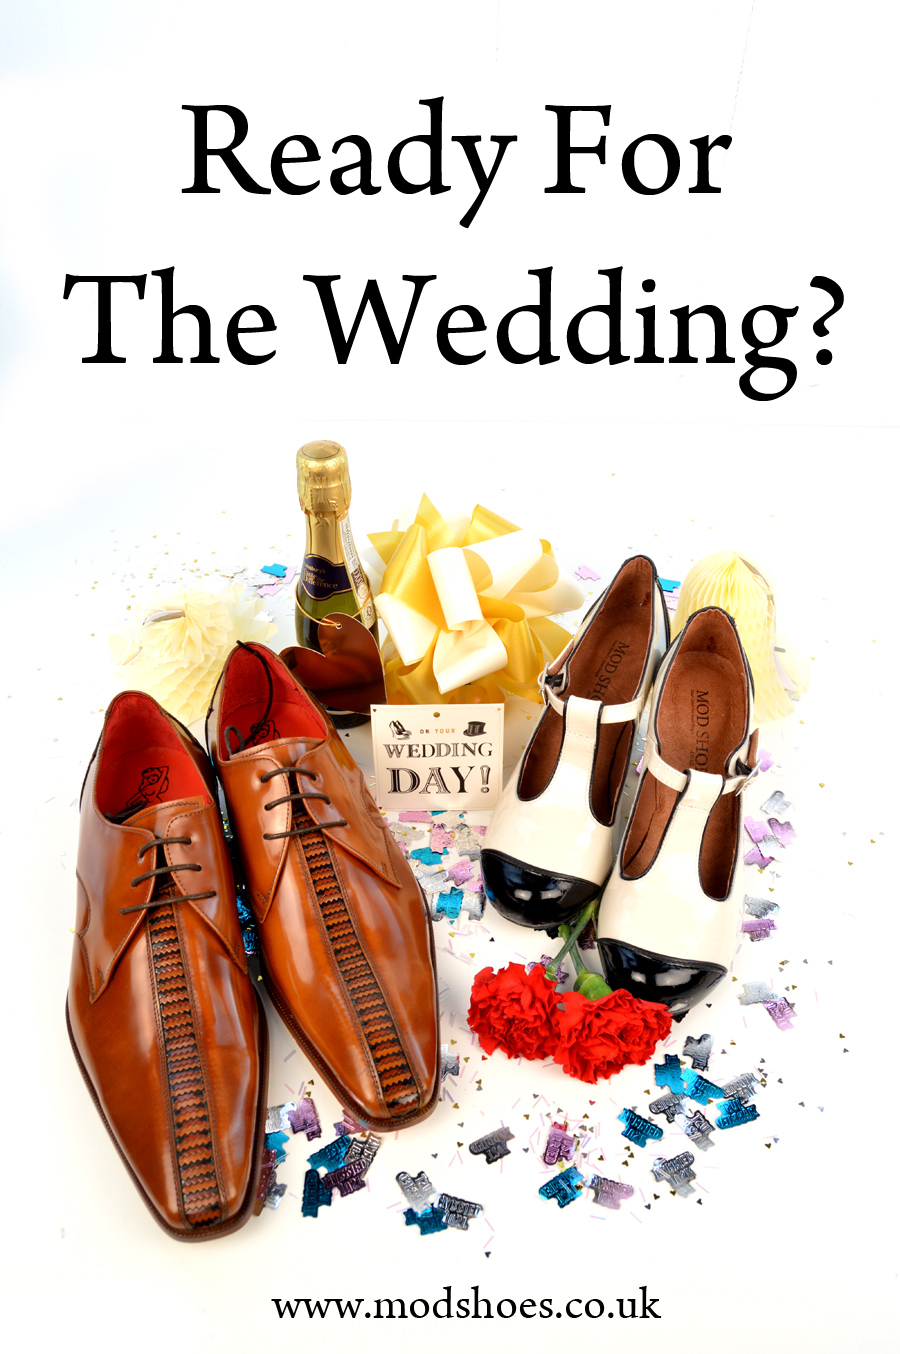 modshoes-ready-for-the-wedding-04